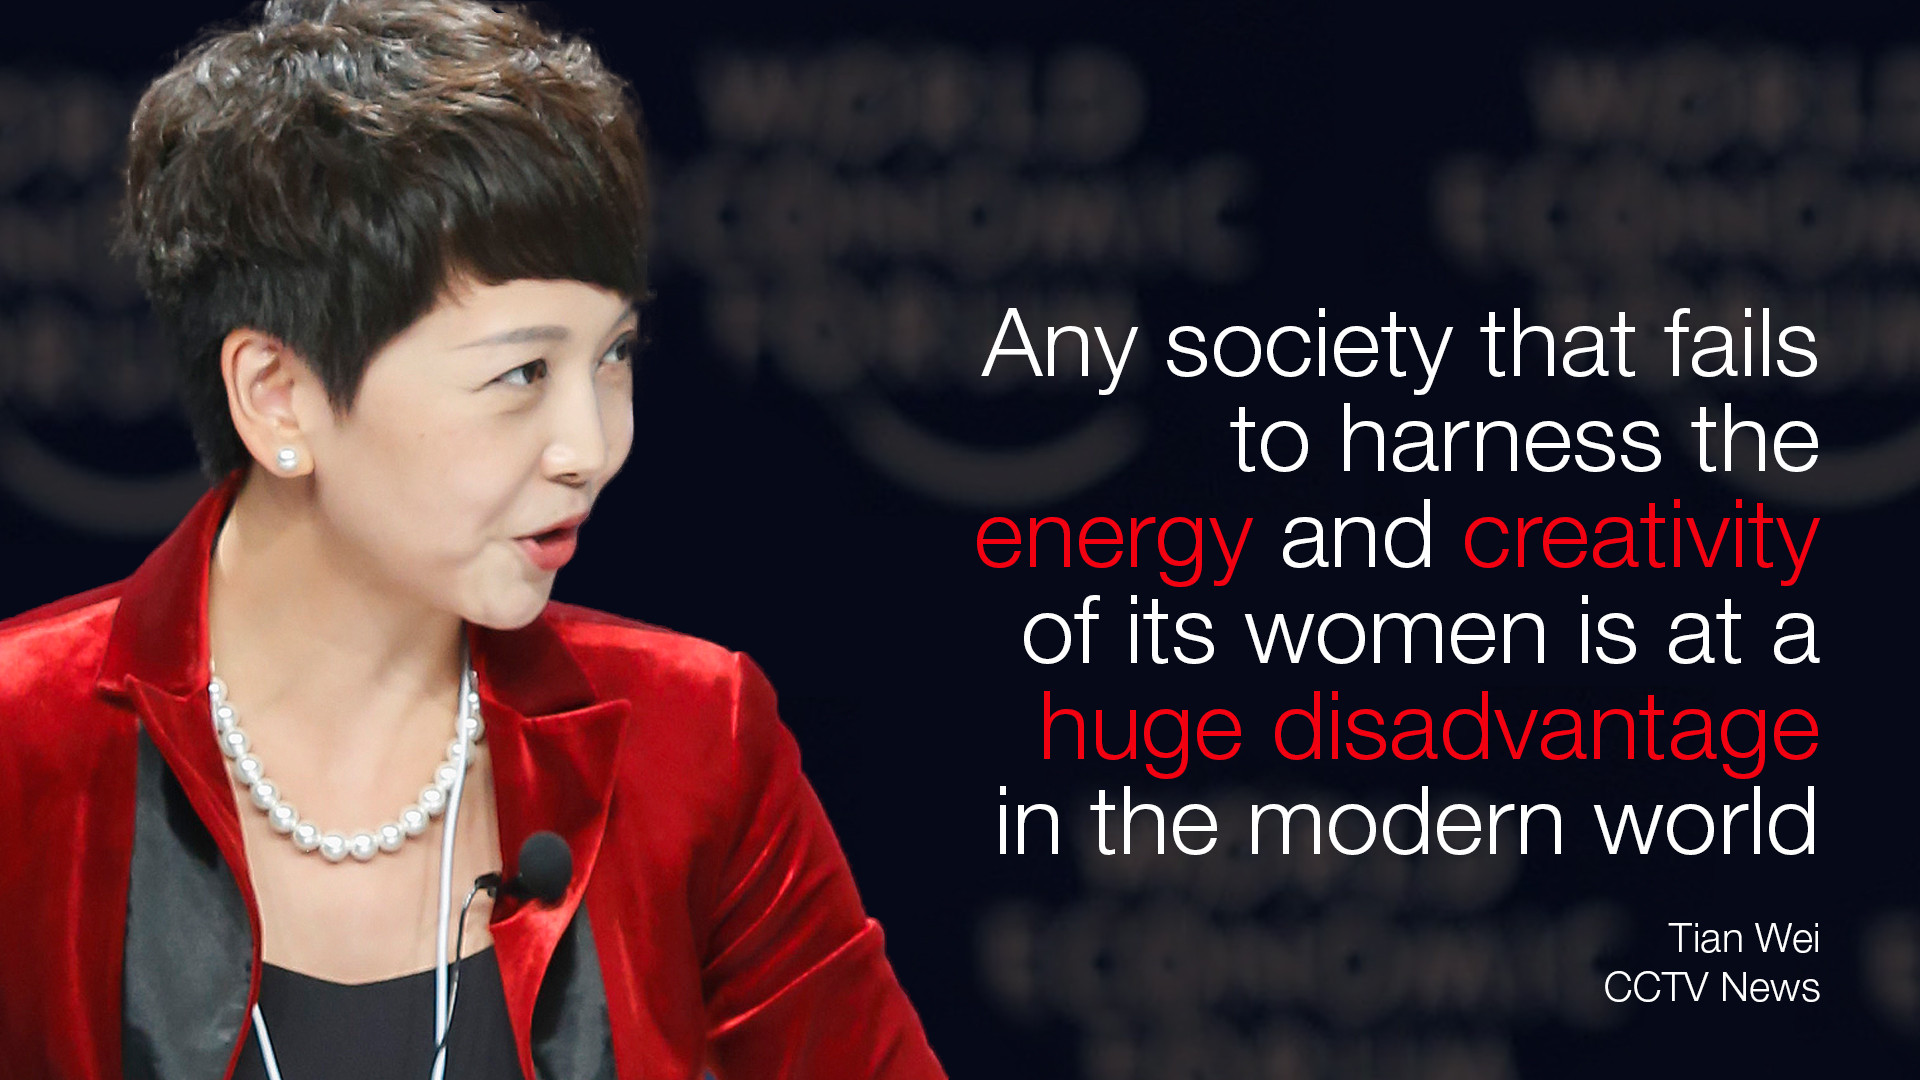 Leadership Quotes By Women  10 quotes from leaders on gender equality